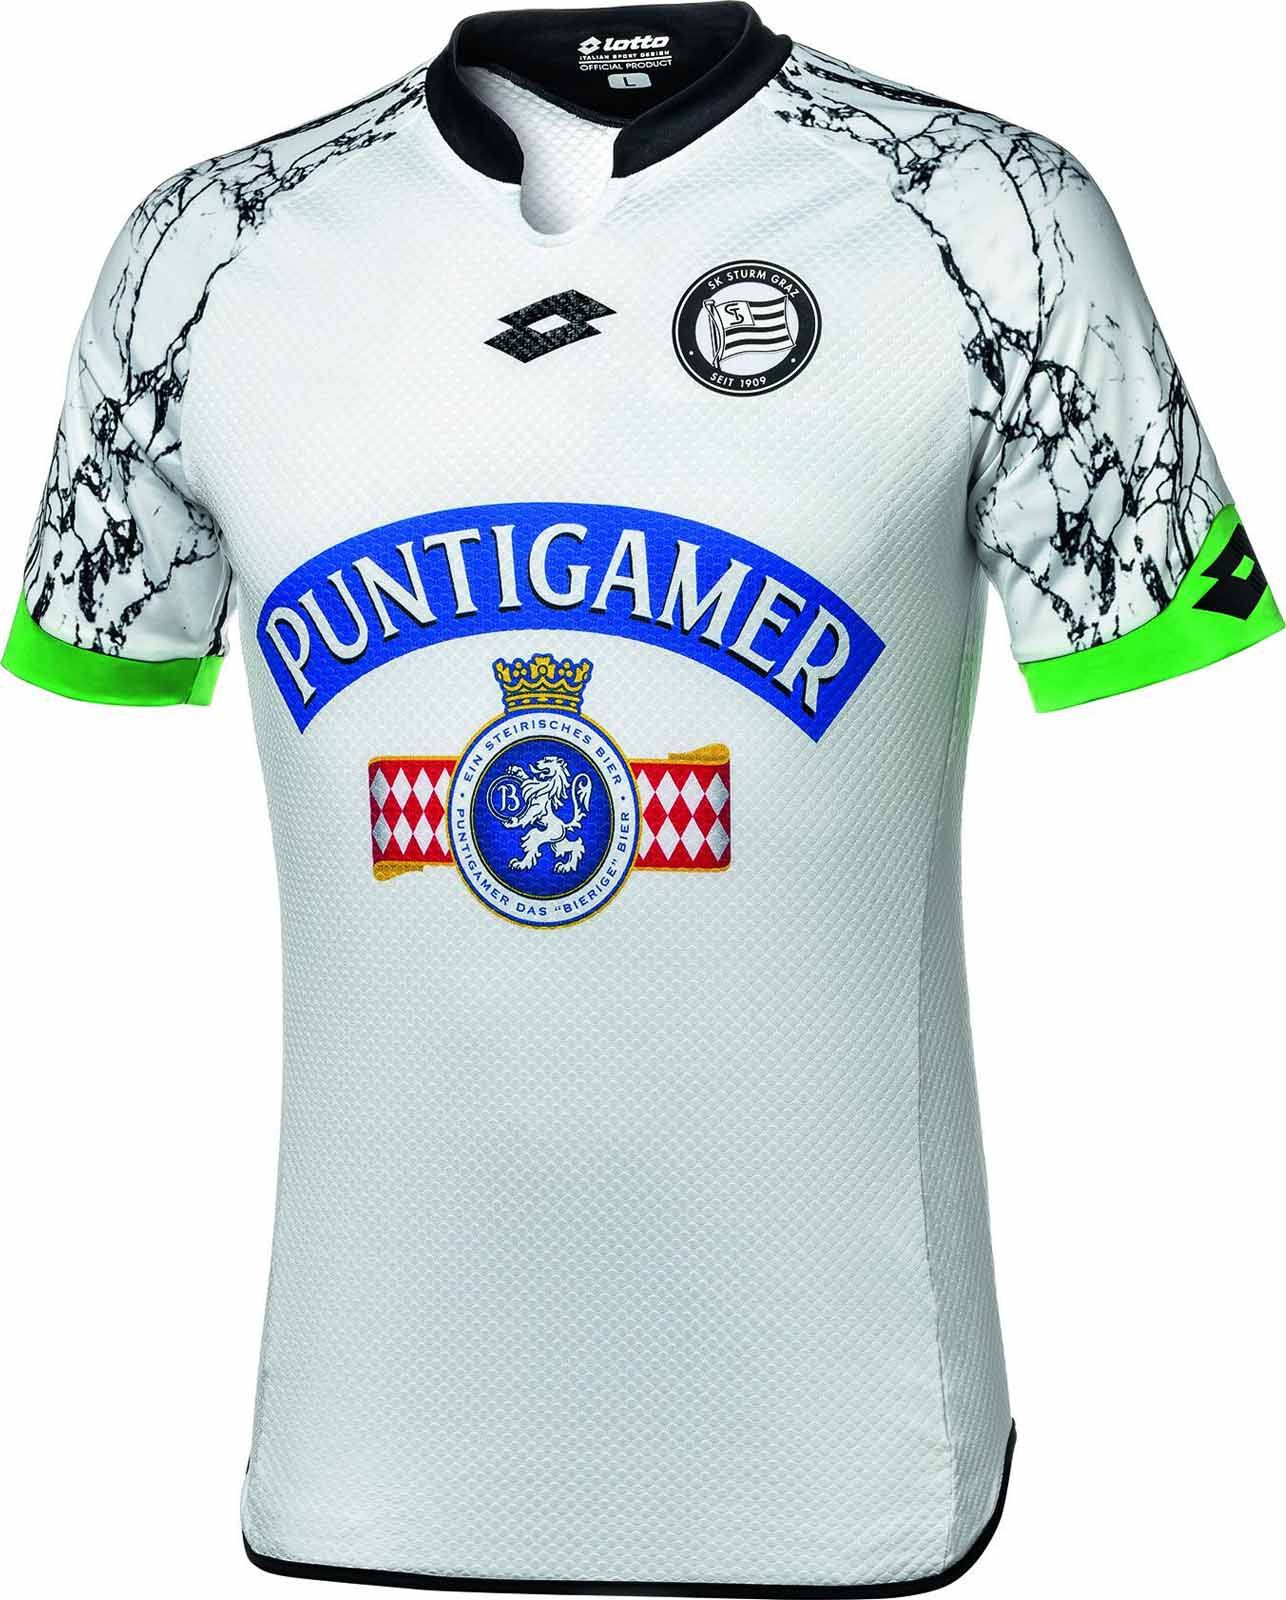 SK Sturm Graz (Austria) - 2015/2016 Lotto Away Shirt